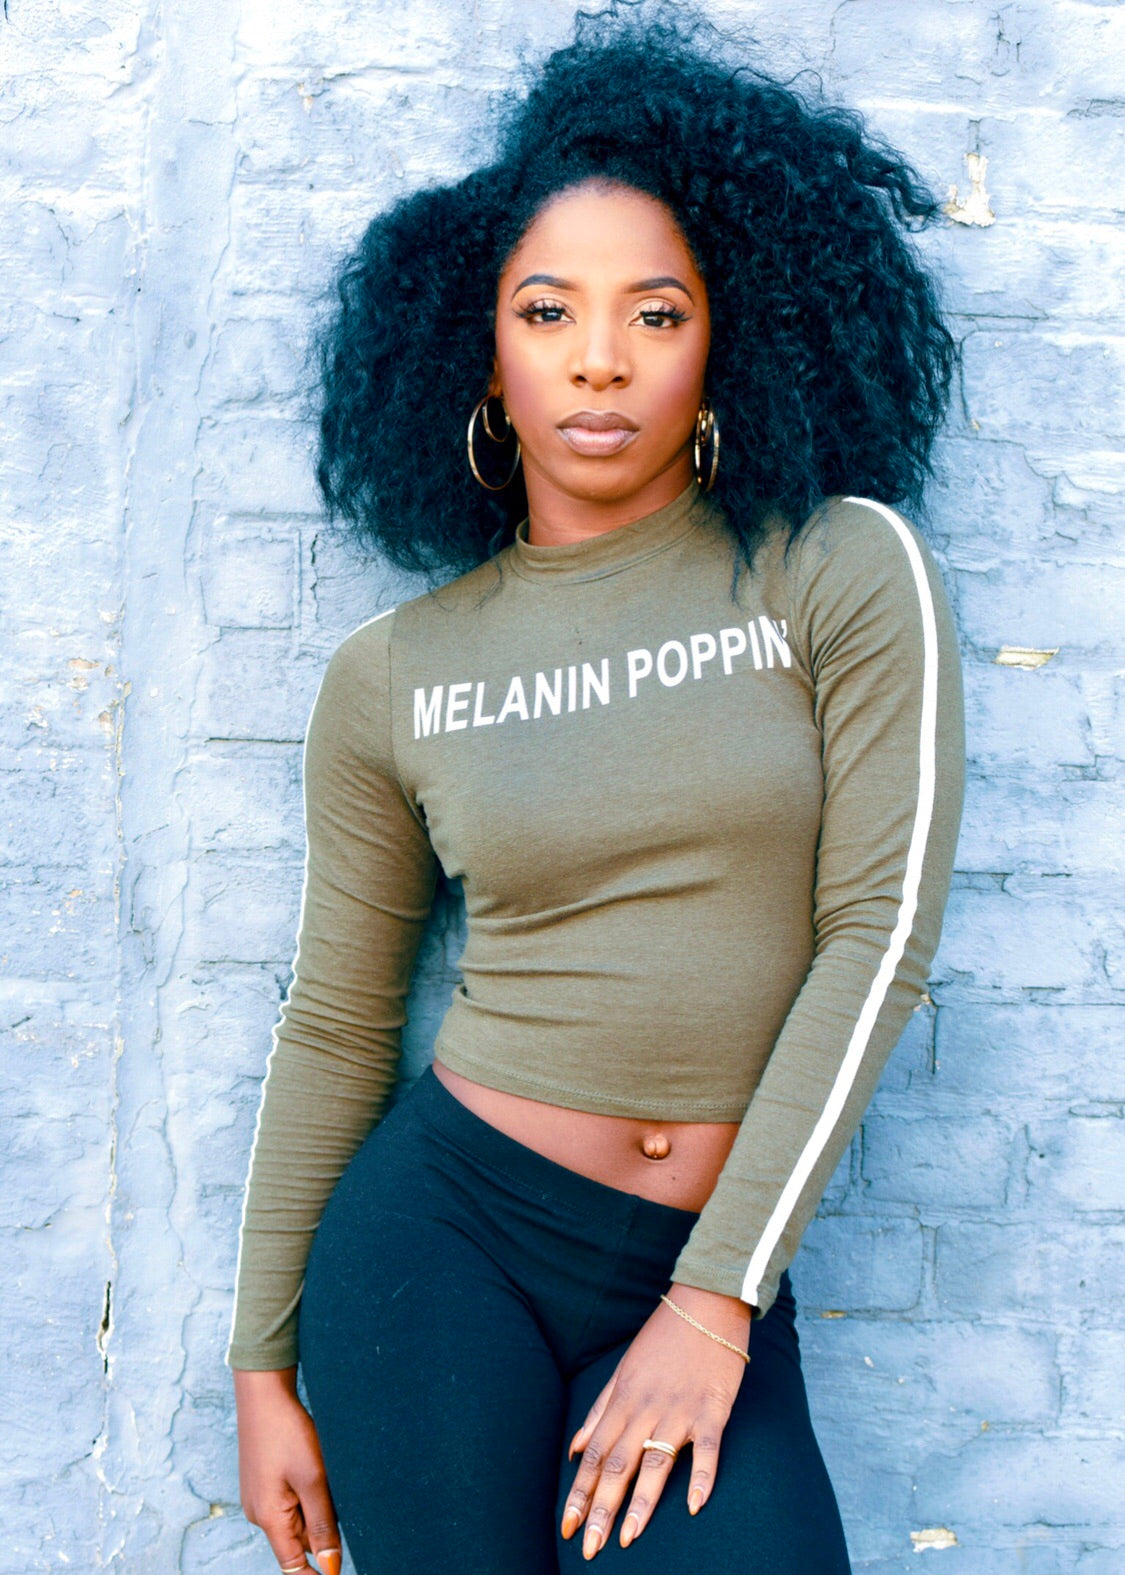 ADS New Fall Melanin Poppin' Crop Top (MORE OPTIONS AVAILABLE)